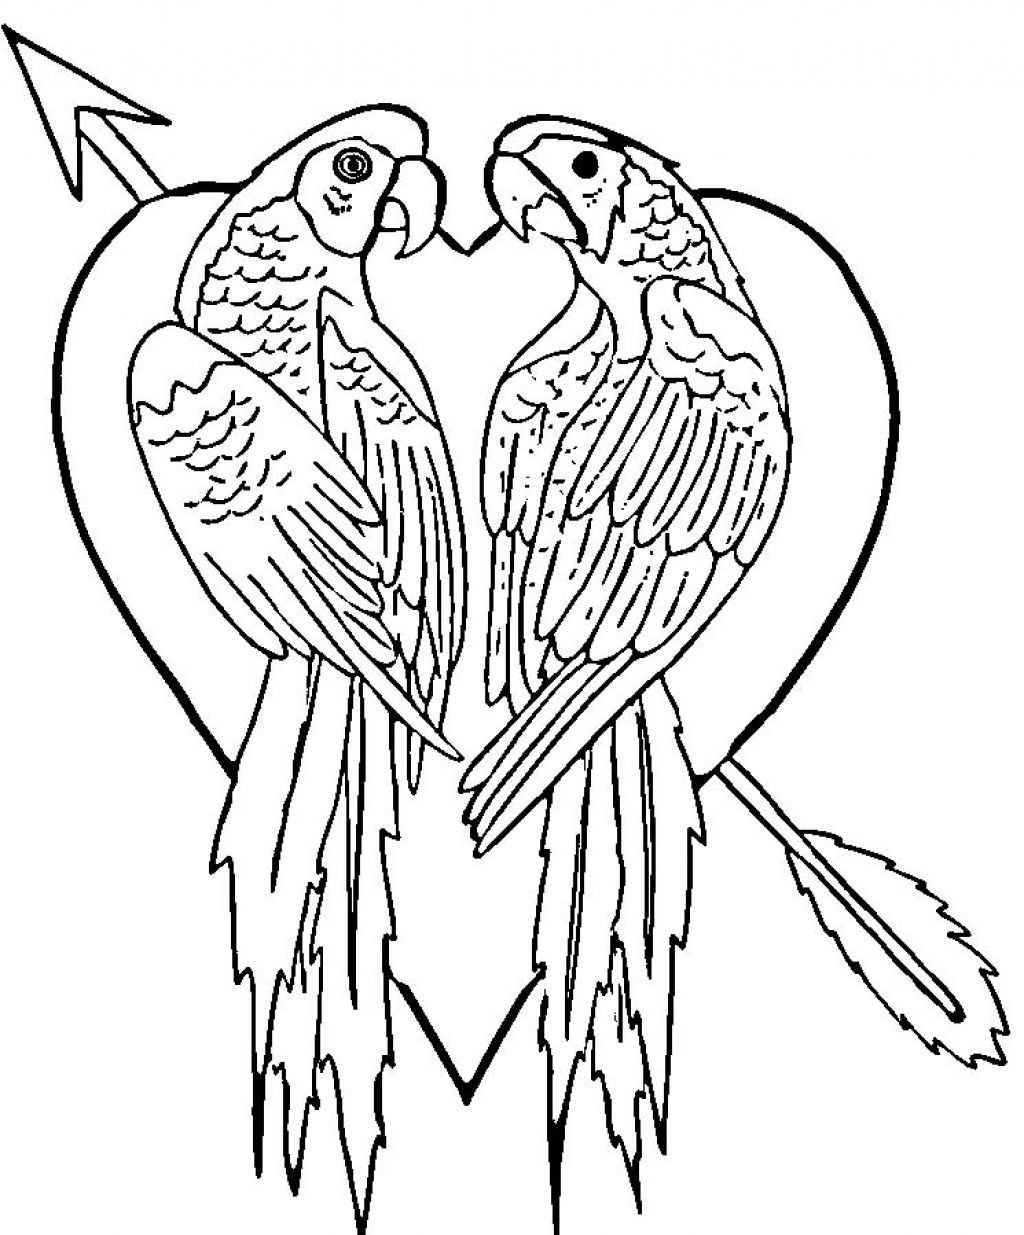 Free Coloring Sheets  Free Printable Parrot Coloring Pages For Kids